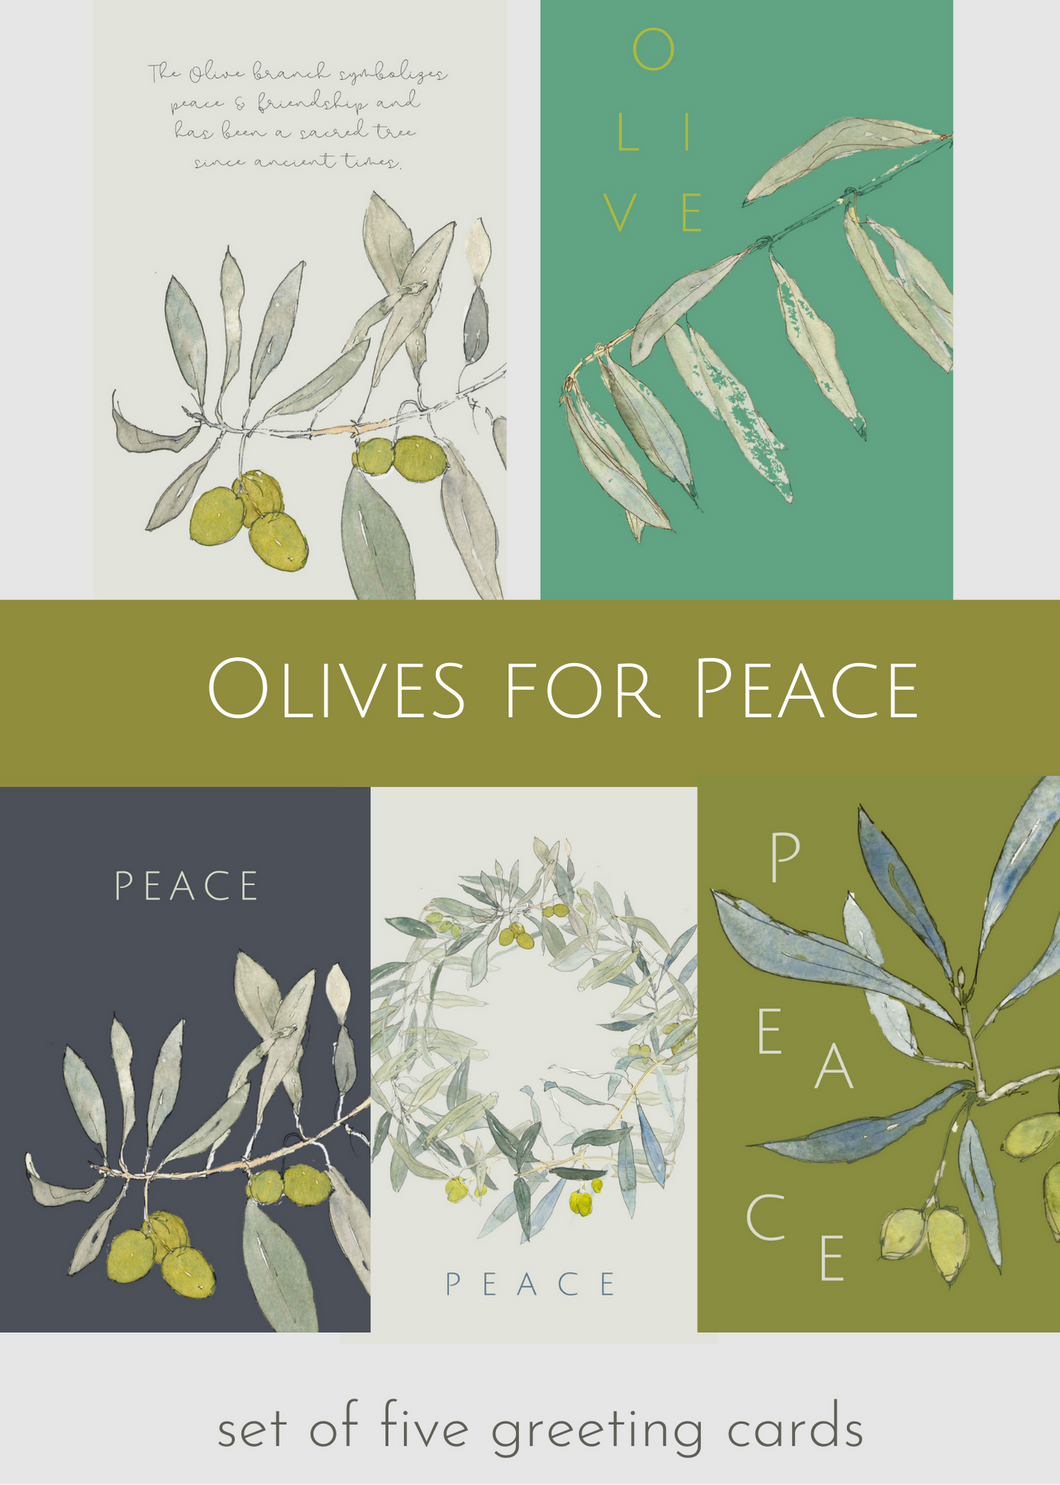 Olive Leaves for Peace, set of 5